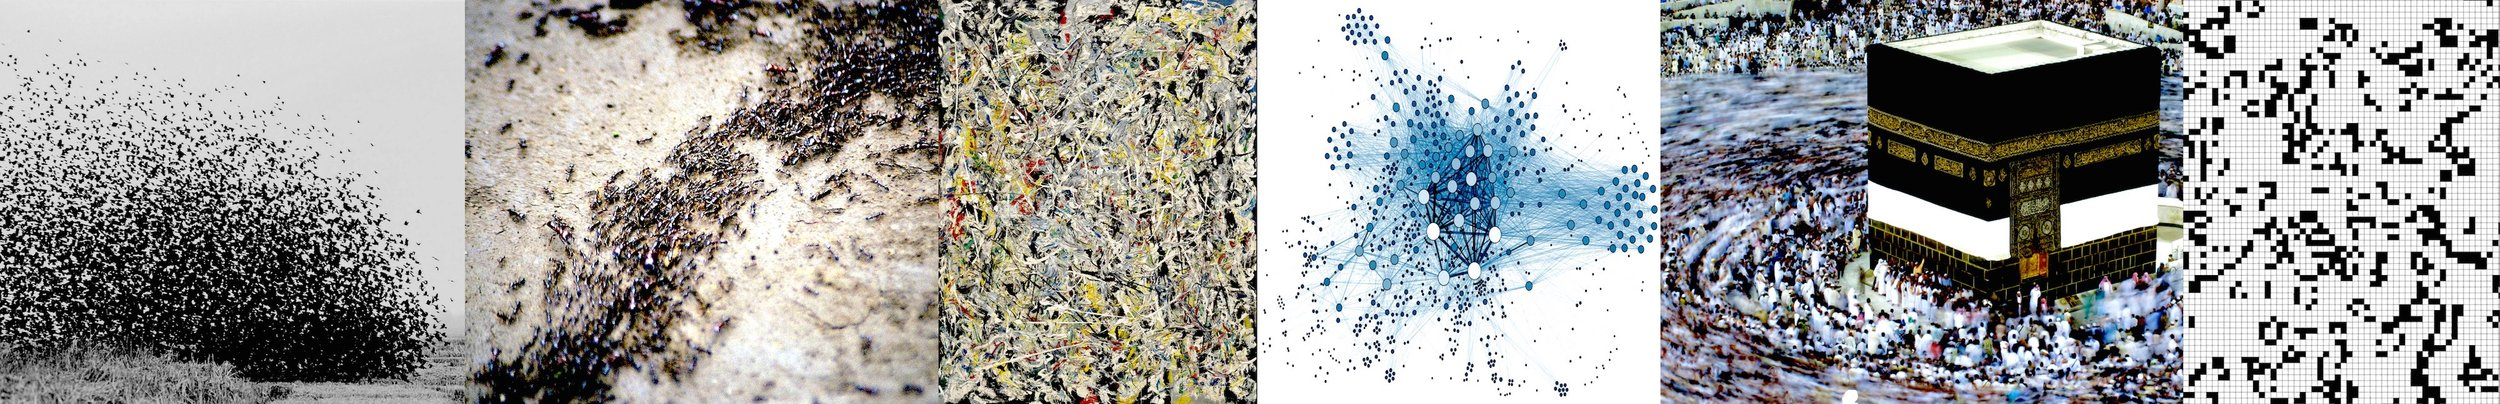 Masses formed from parts (left to right): Swarm behavior in birds and ants, Jackson Pollock's  White Light  [1954] used on the cover of Ornette Coleman's 1960 LP  Free Jazz , example of a social network map, crowds of worshipers at the annual Hajj in Mecca, Cellular Automata. (Image sources at the bottom of the page).